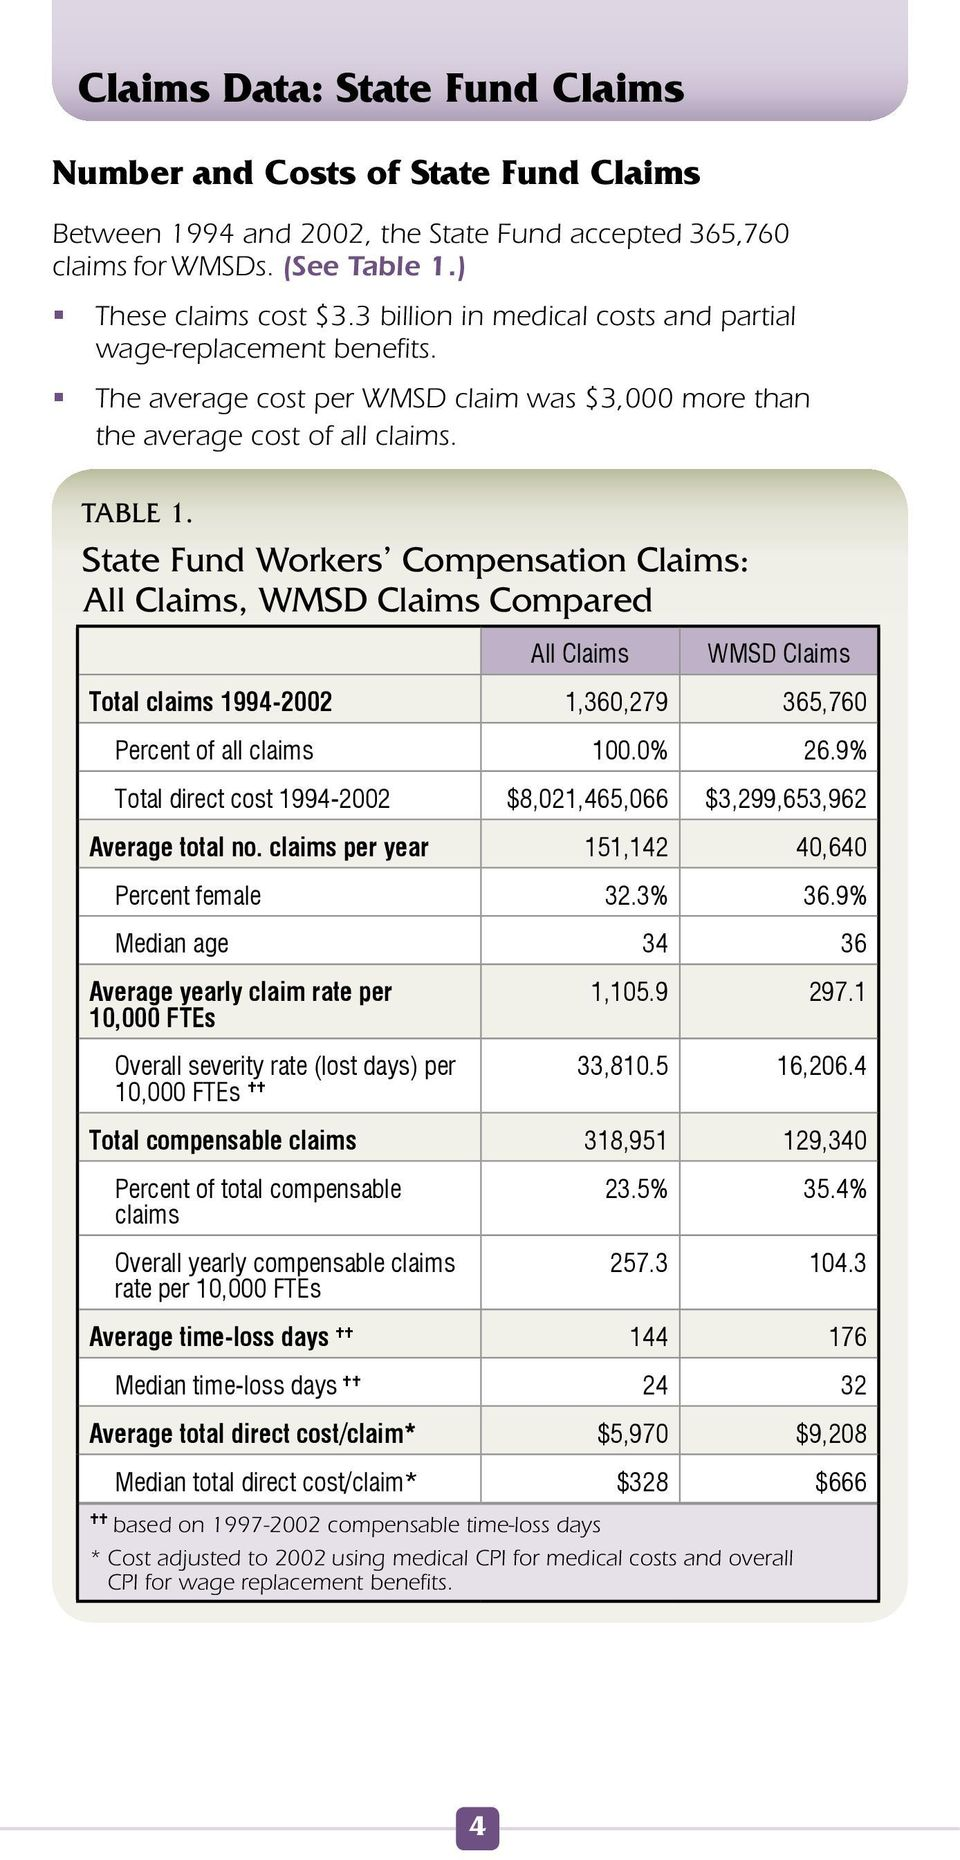 State Fund Workers Compensation Claims: All Claims, WMSD Claims Compared All Claims WMSD Claims Total claims 1994-2002 1,360,279 365,760 Percent of all claims 100.0% 26.